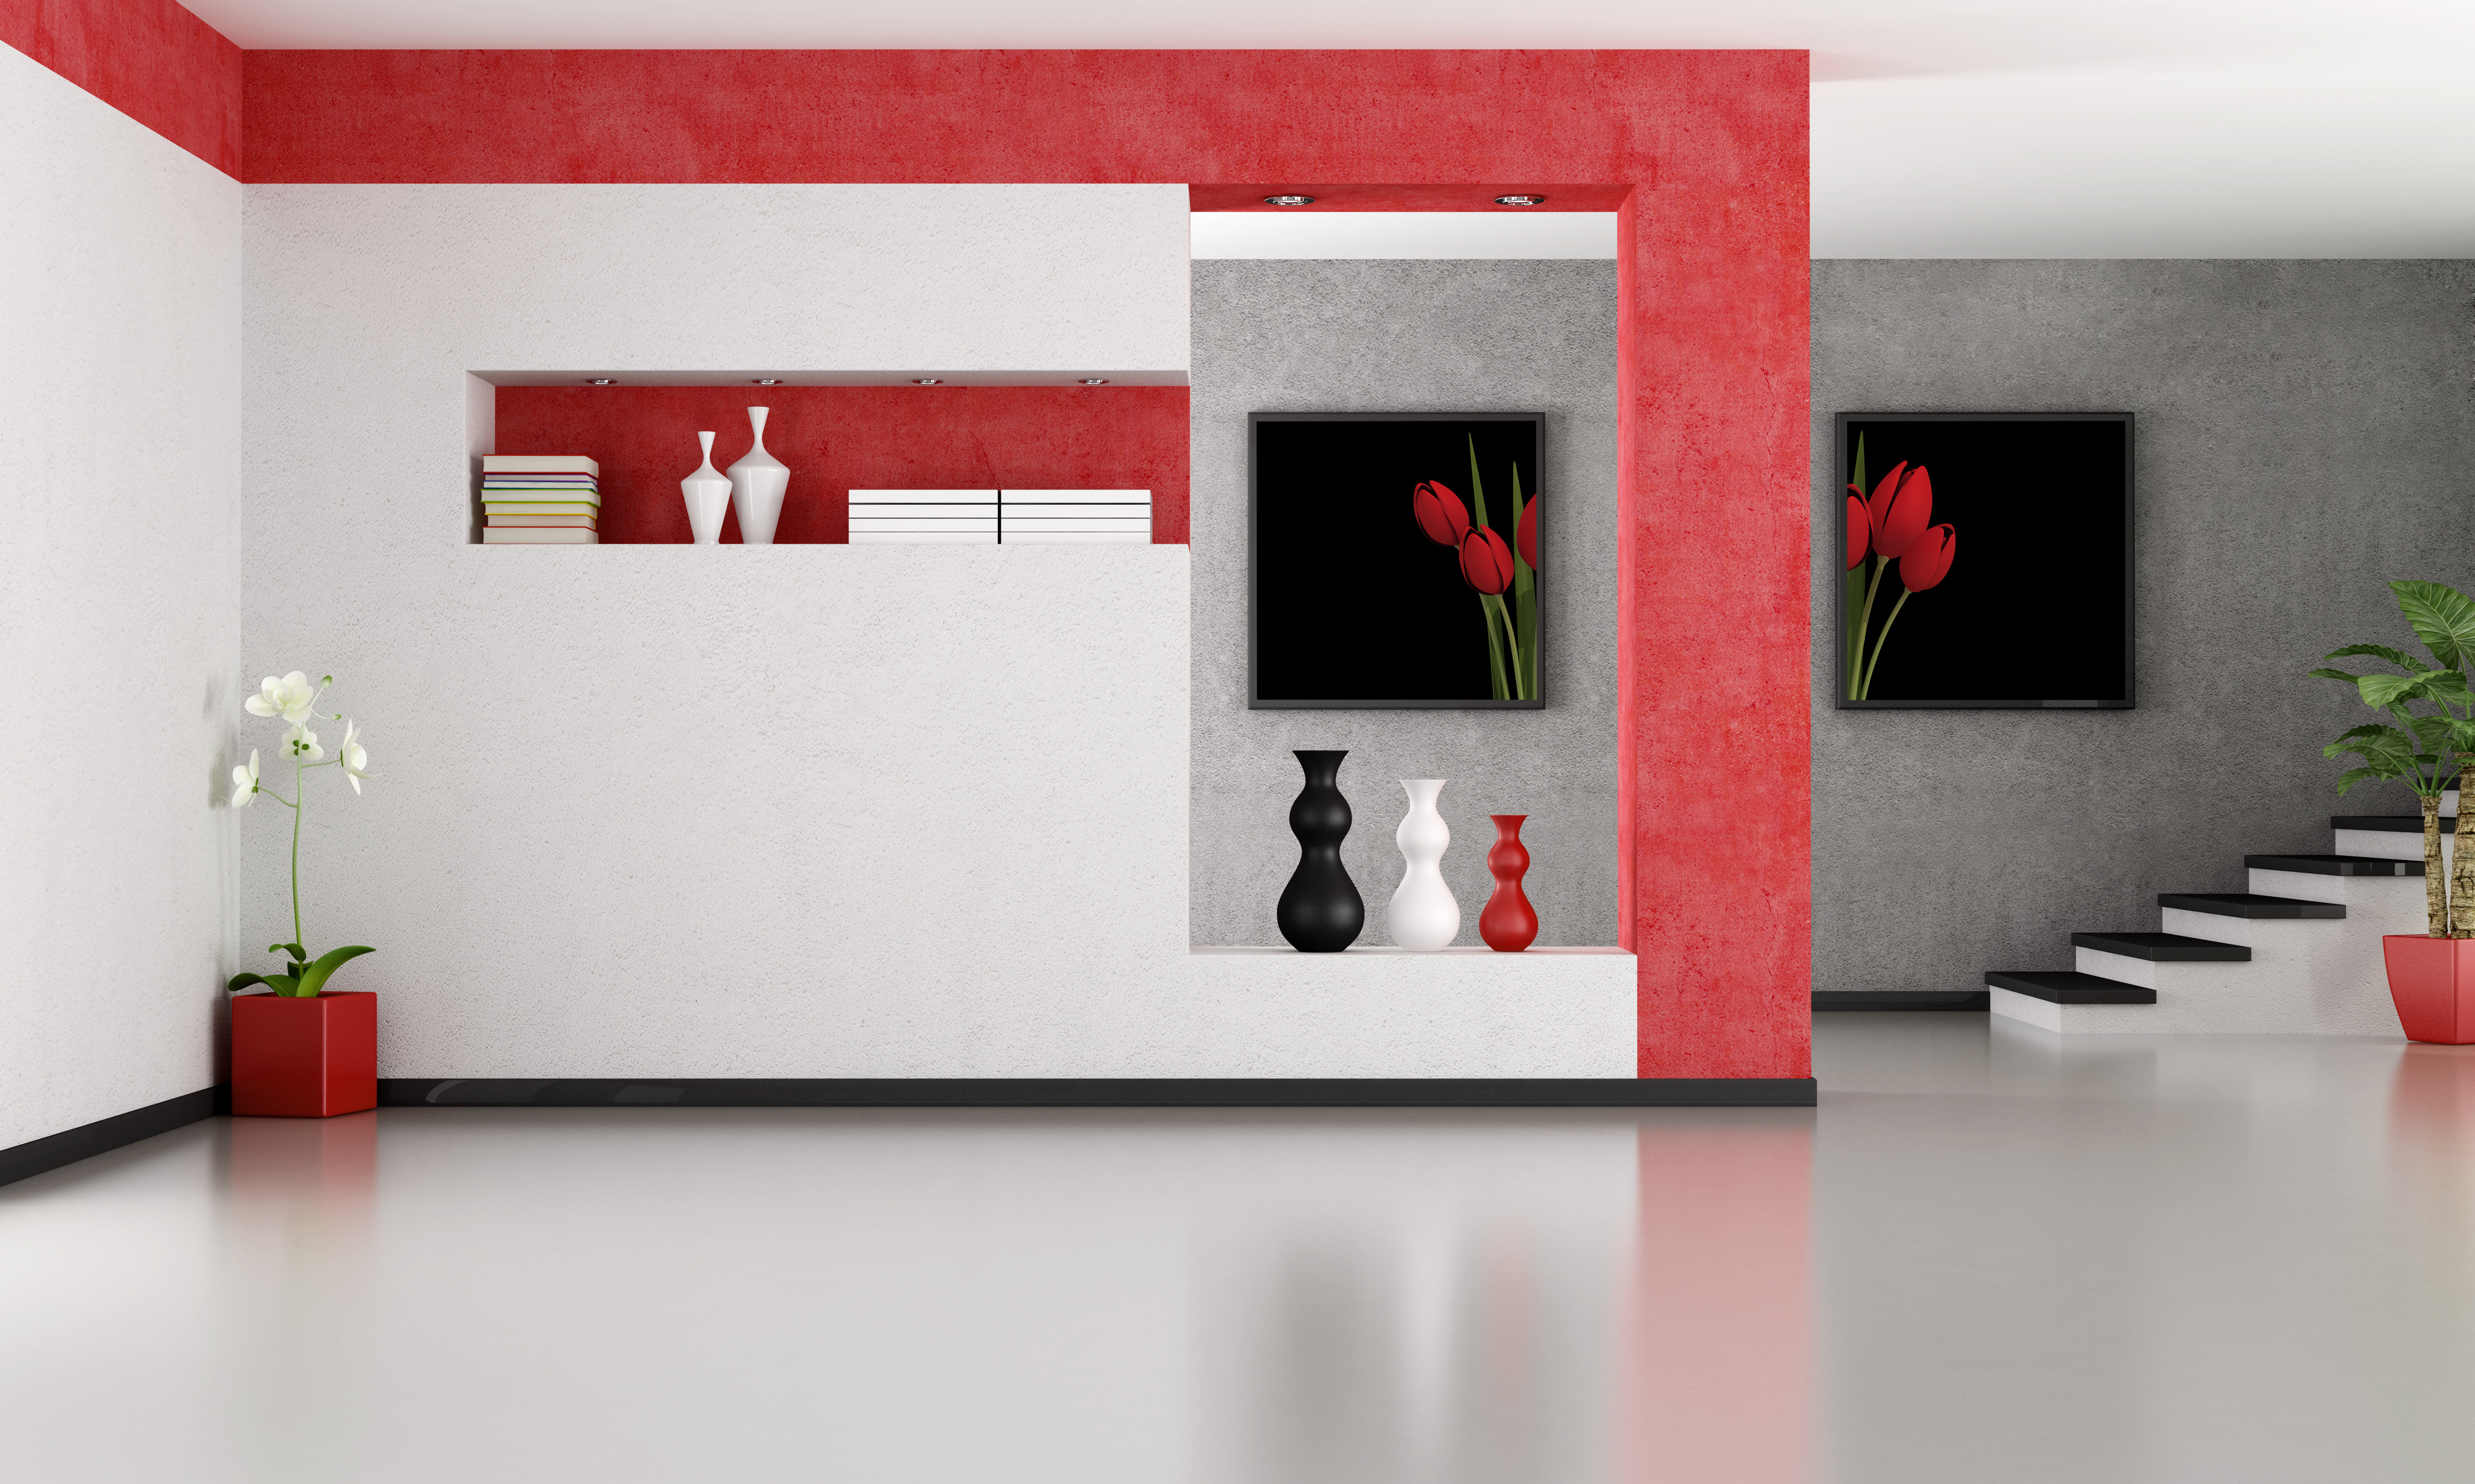 wallpaper for wall design - photo #6